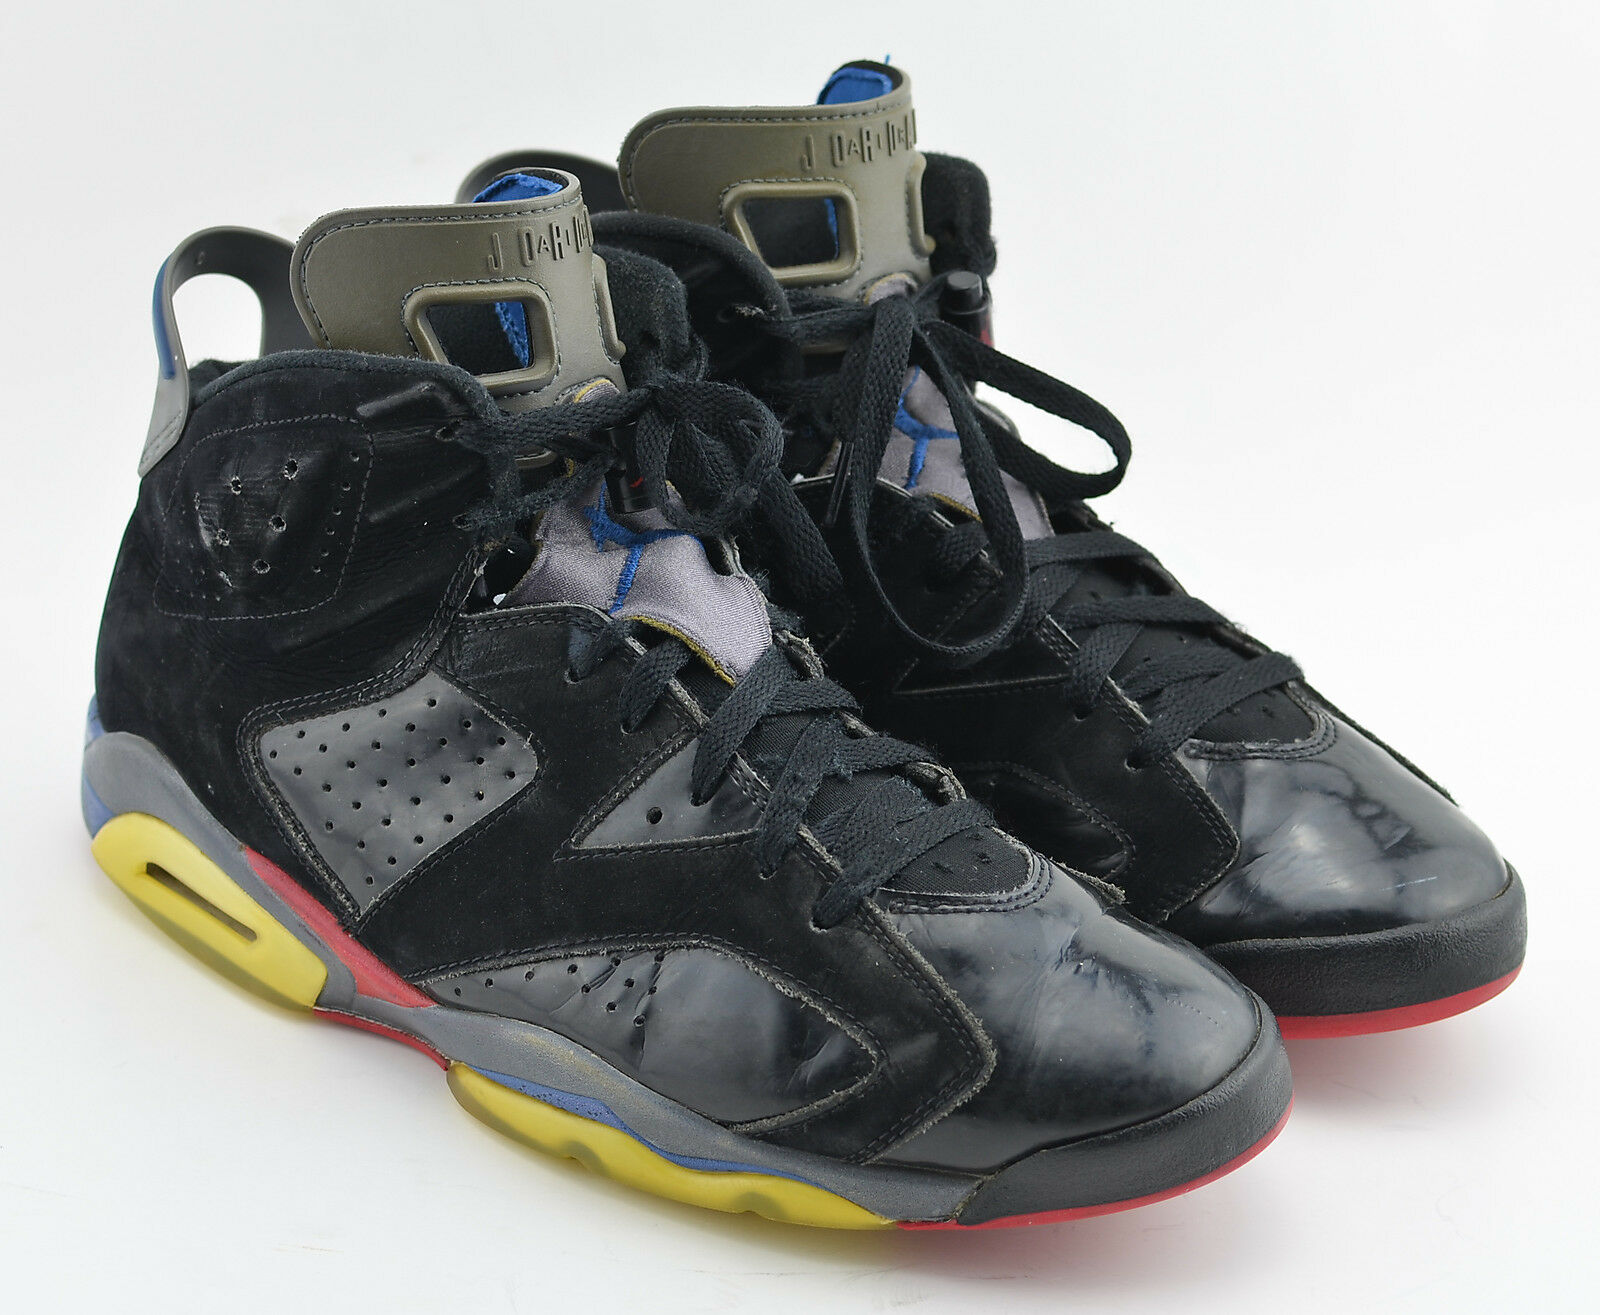 Gentleman/Lady MENS AIR JORDAN 6 VI RETRO PISTONS BASKETBALL SHOES 384664 SIZE 11.5 BLACK 384664 SHOES 001 Complete specification Stylish and charming a lot of varieties HA57310 db4bfd